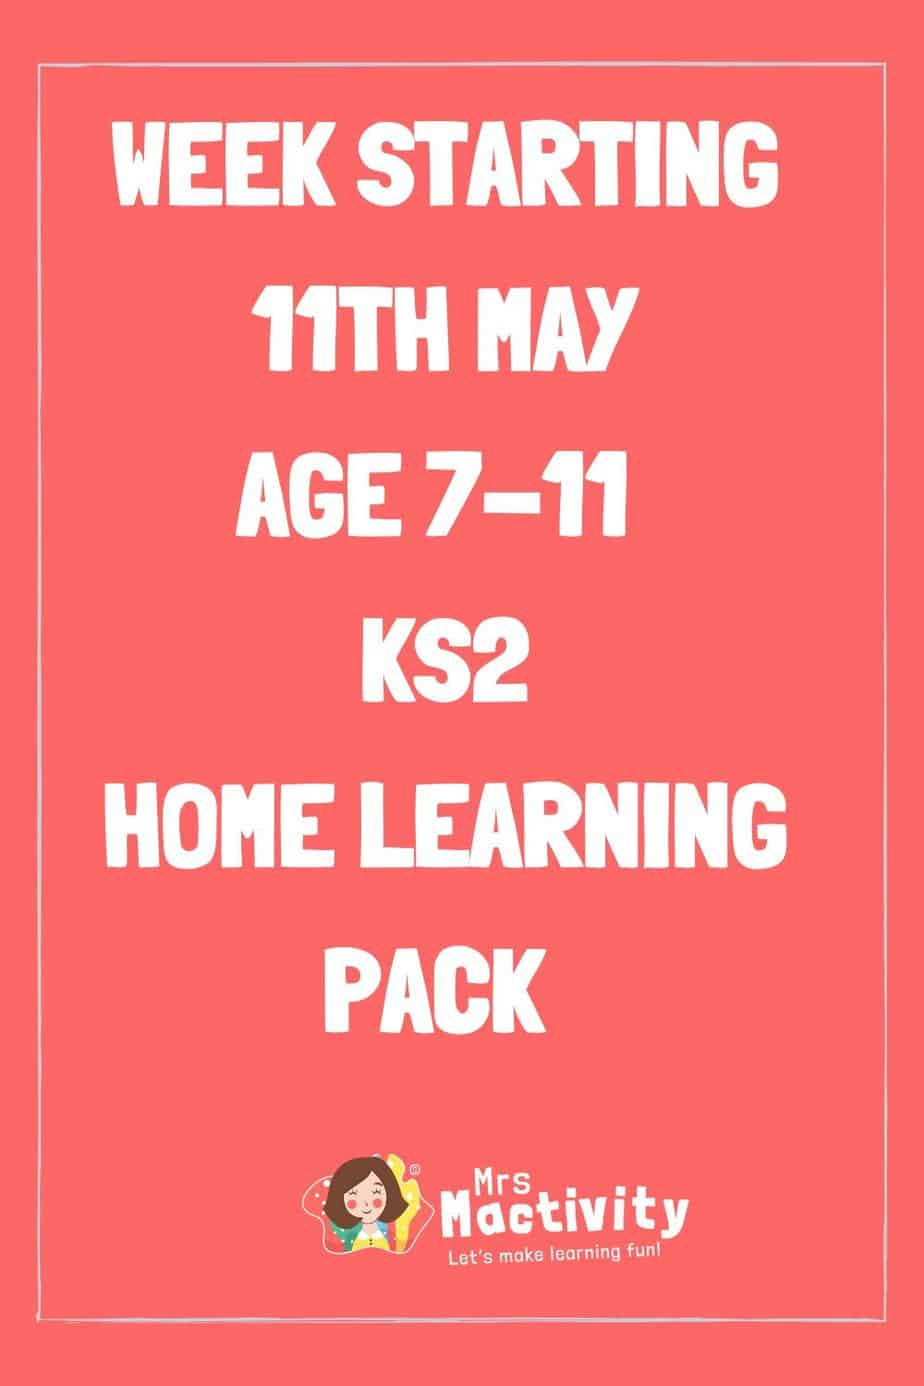 11th May KS2 (Age 7-11) Weekly Home Learning Pack